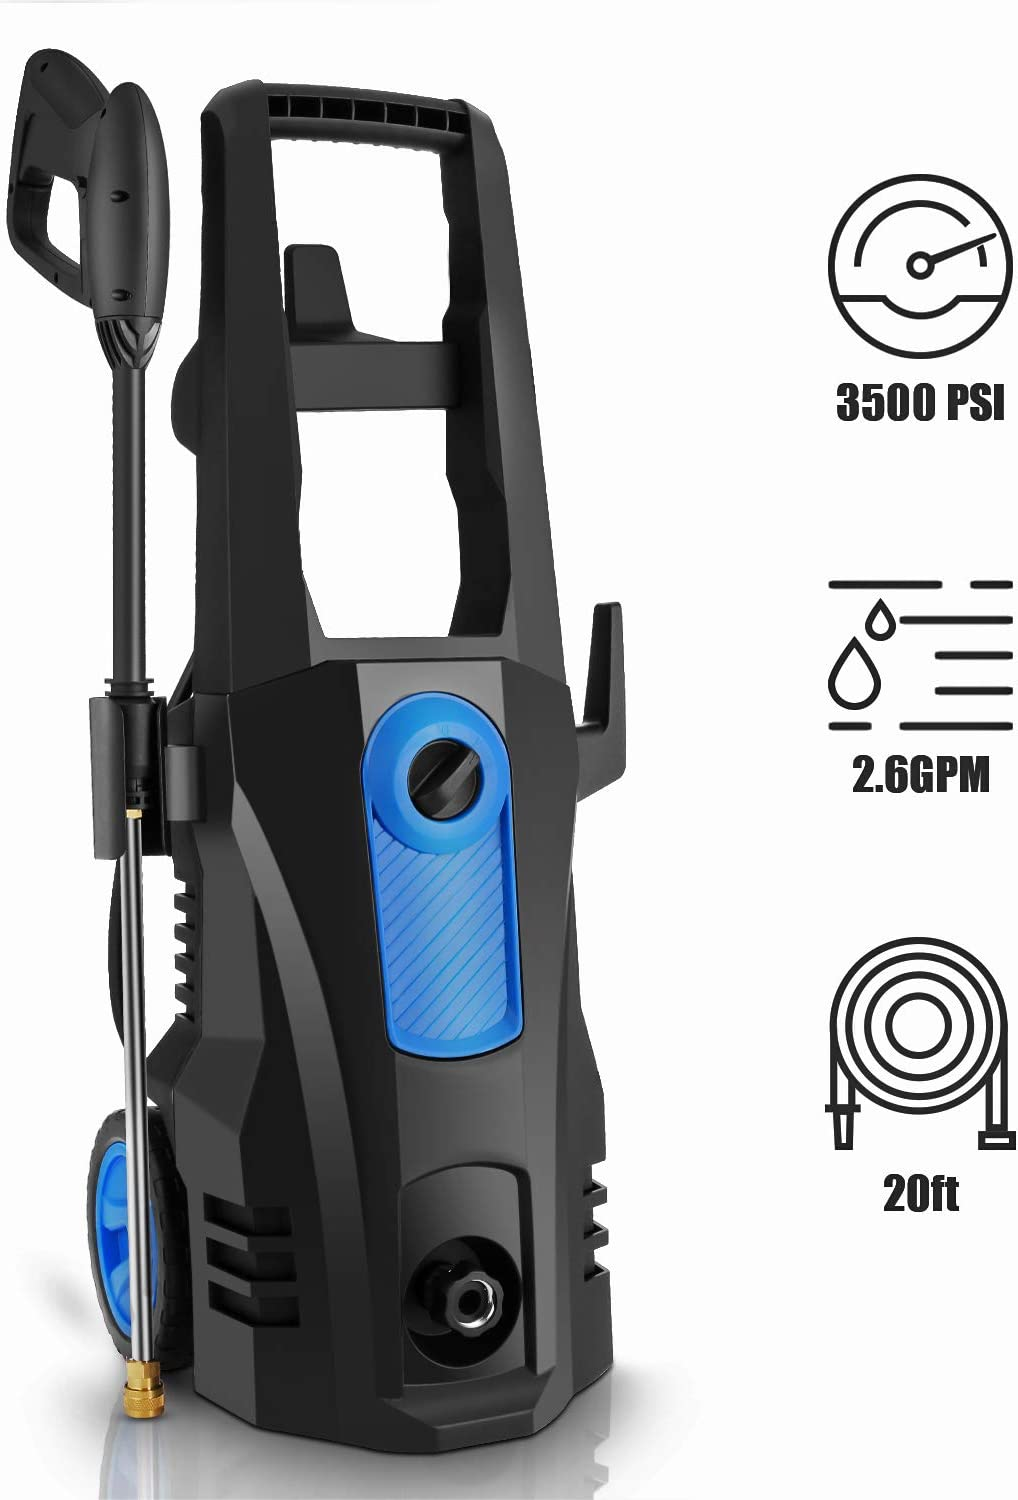 TEANDE 3500 PSI Electric Pressure Washer, 2.60 GPM 1800W Power Washer with Rolling Wheels (Blue)